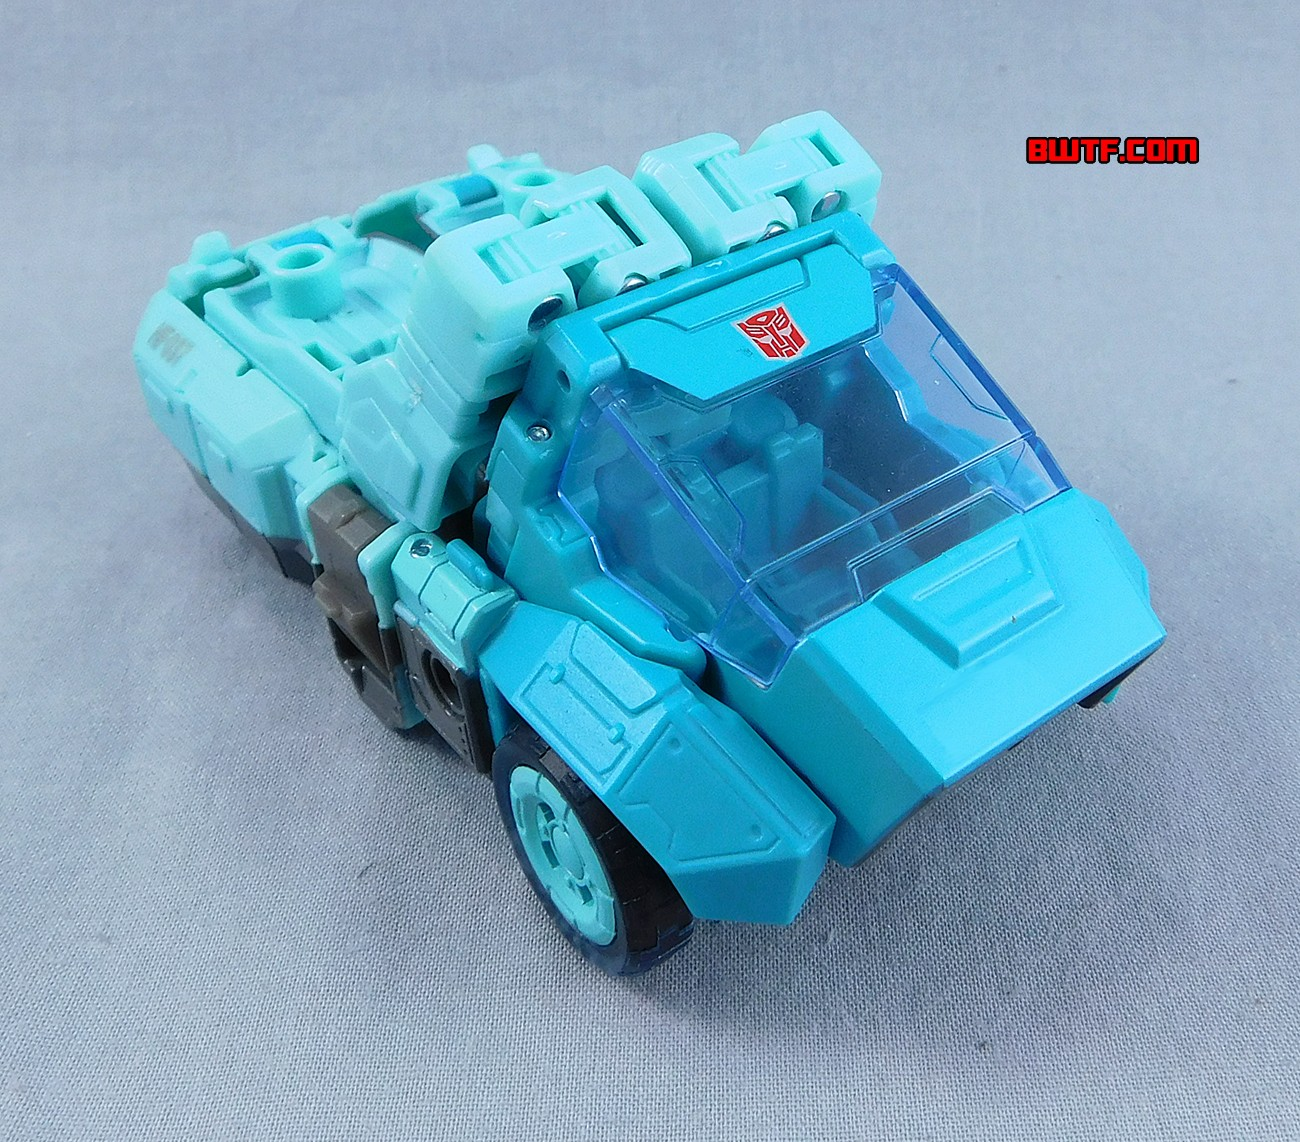 Transformers News: In-Hand Images of Transformers Titans Return Kup with Flintlock